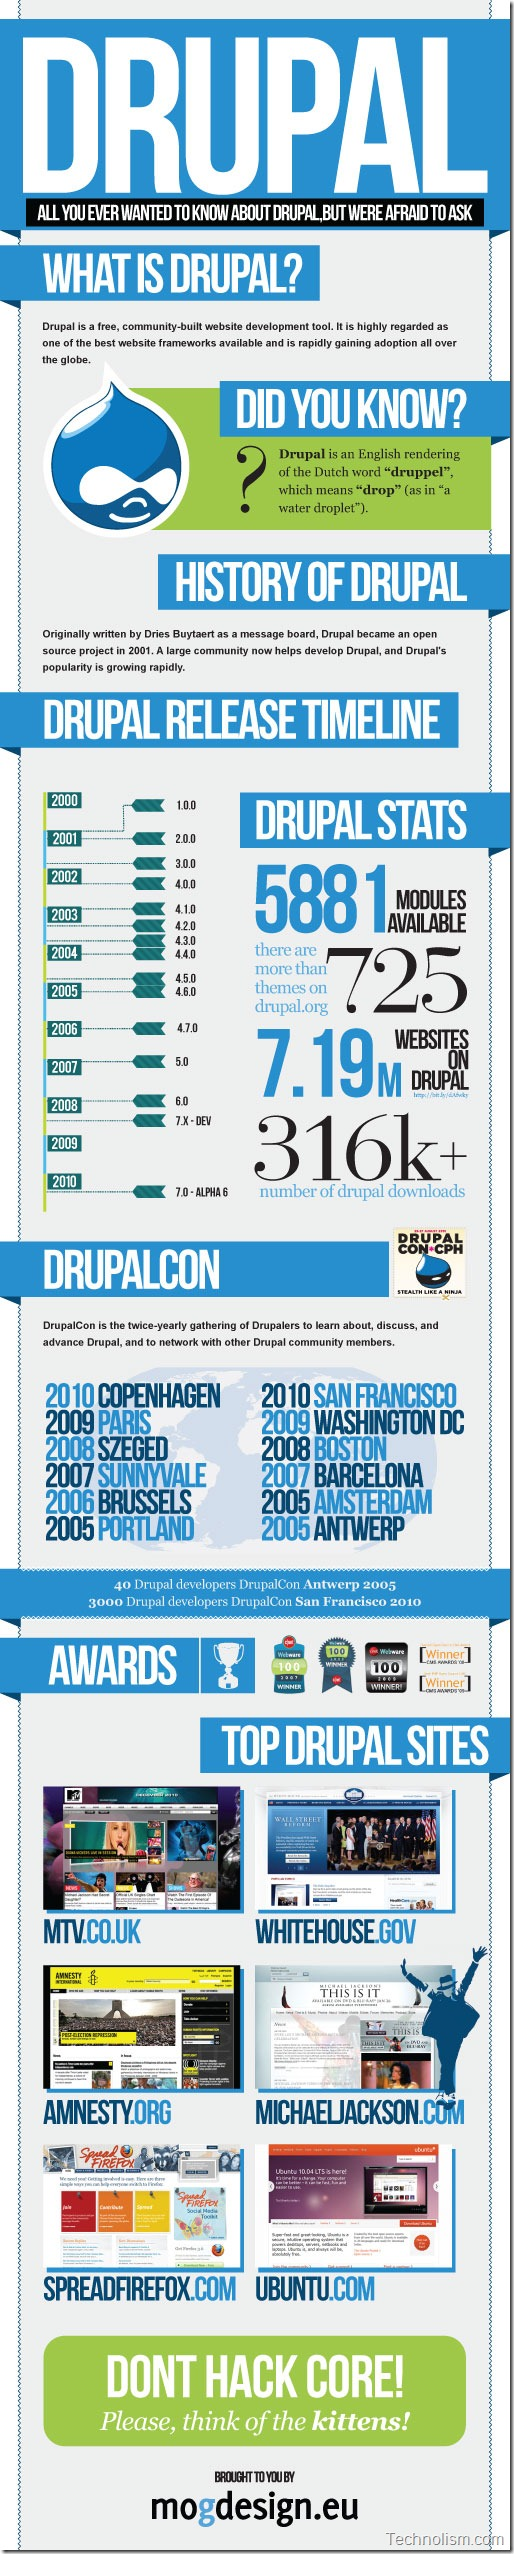 Drupal content management system like wordpress history